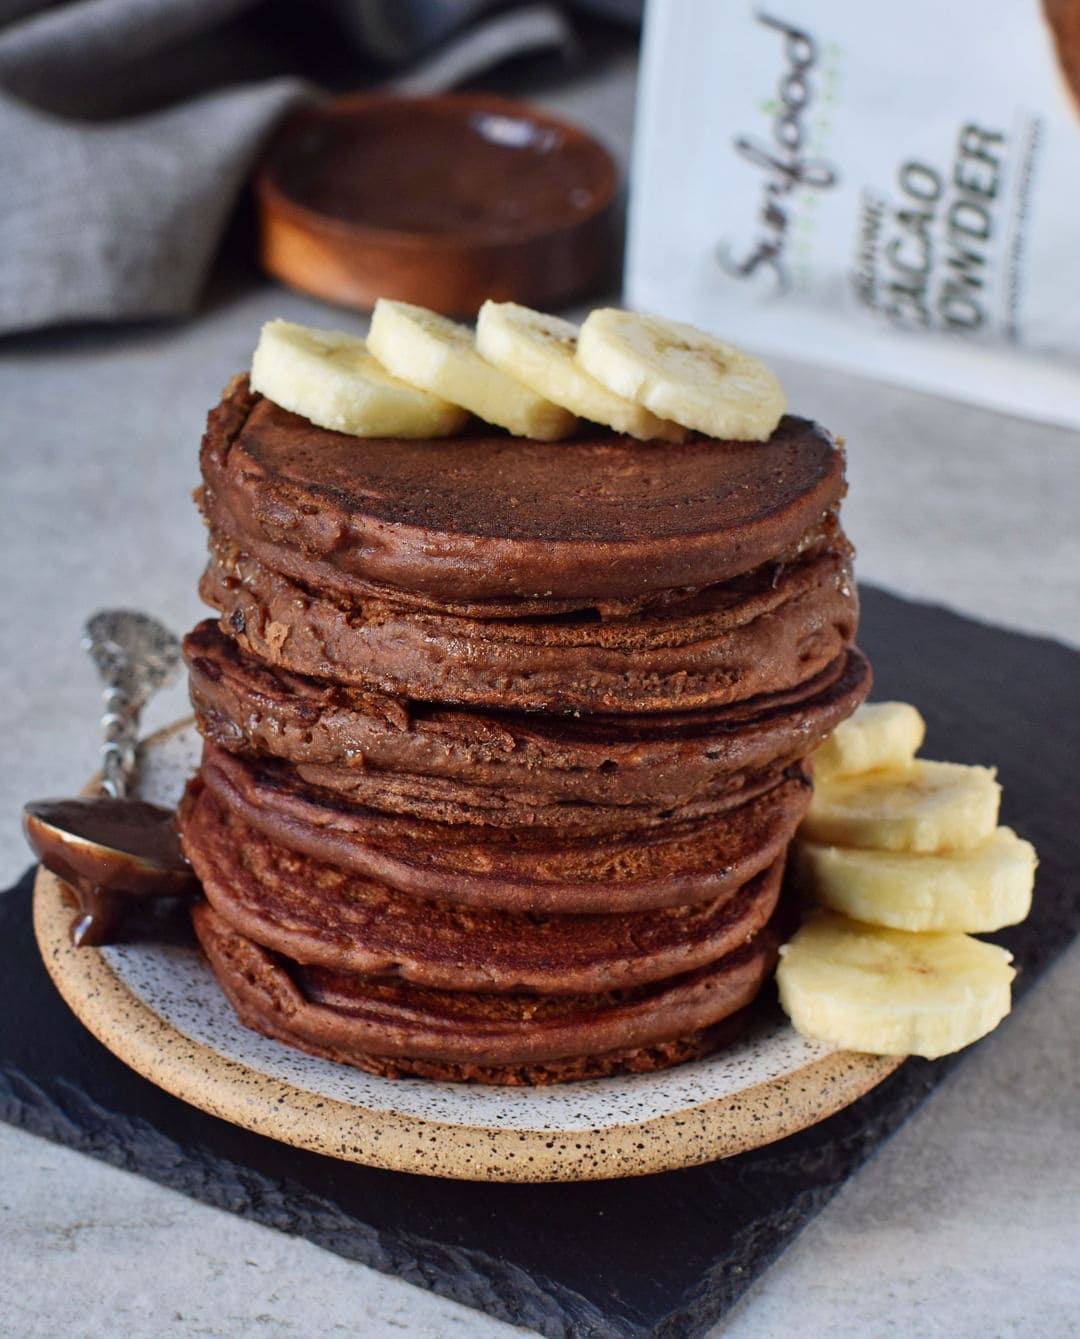 Gluten-free caramel chocolate pancakes with banana slices and Sunfood pouch in the background